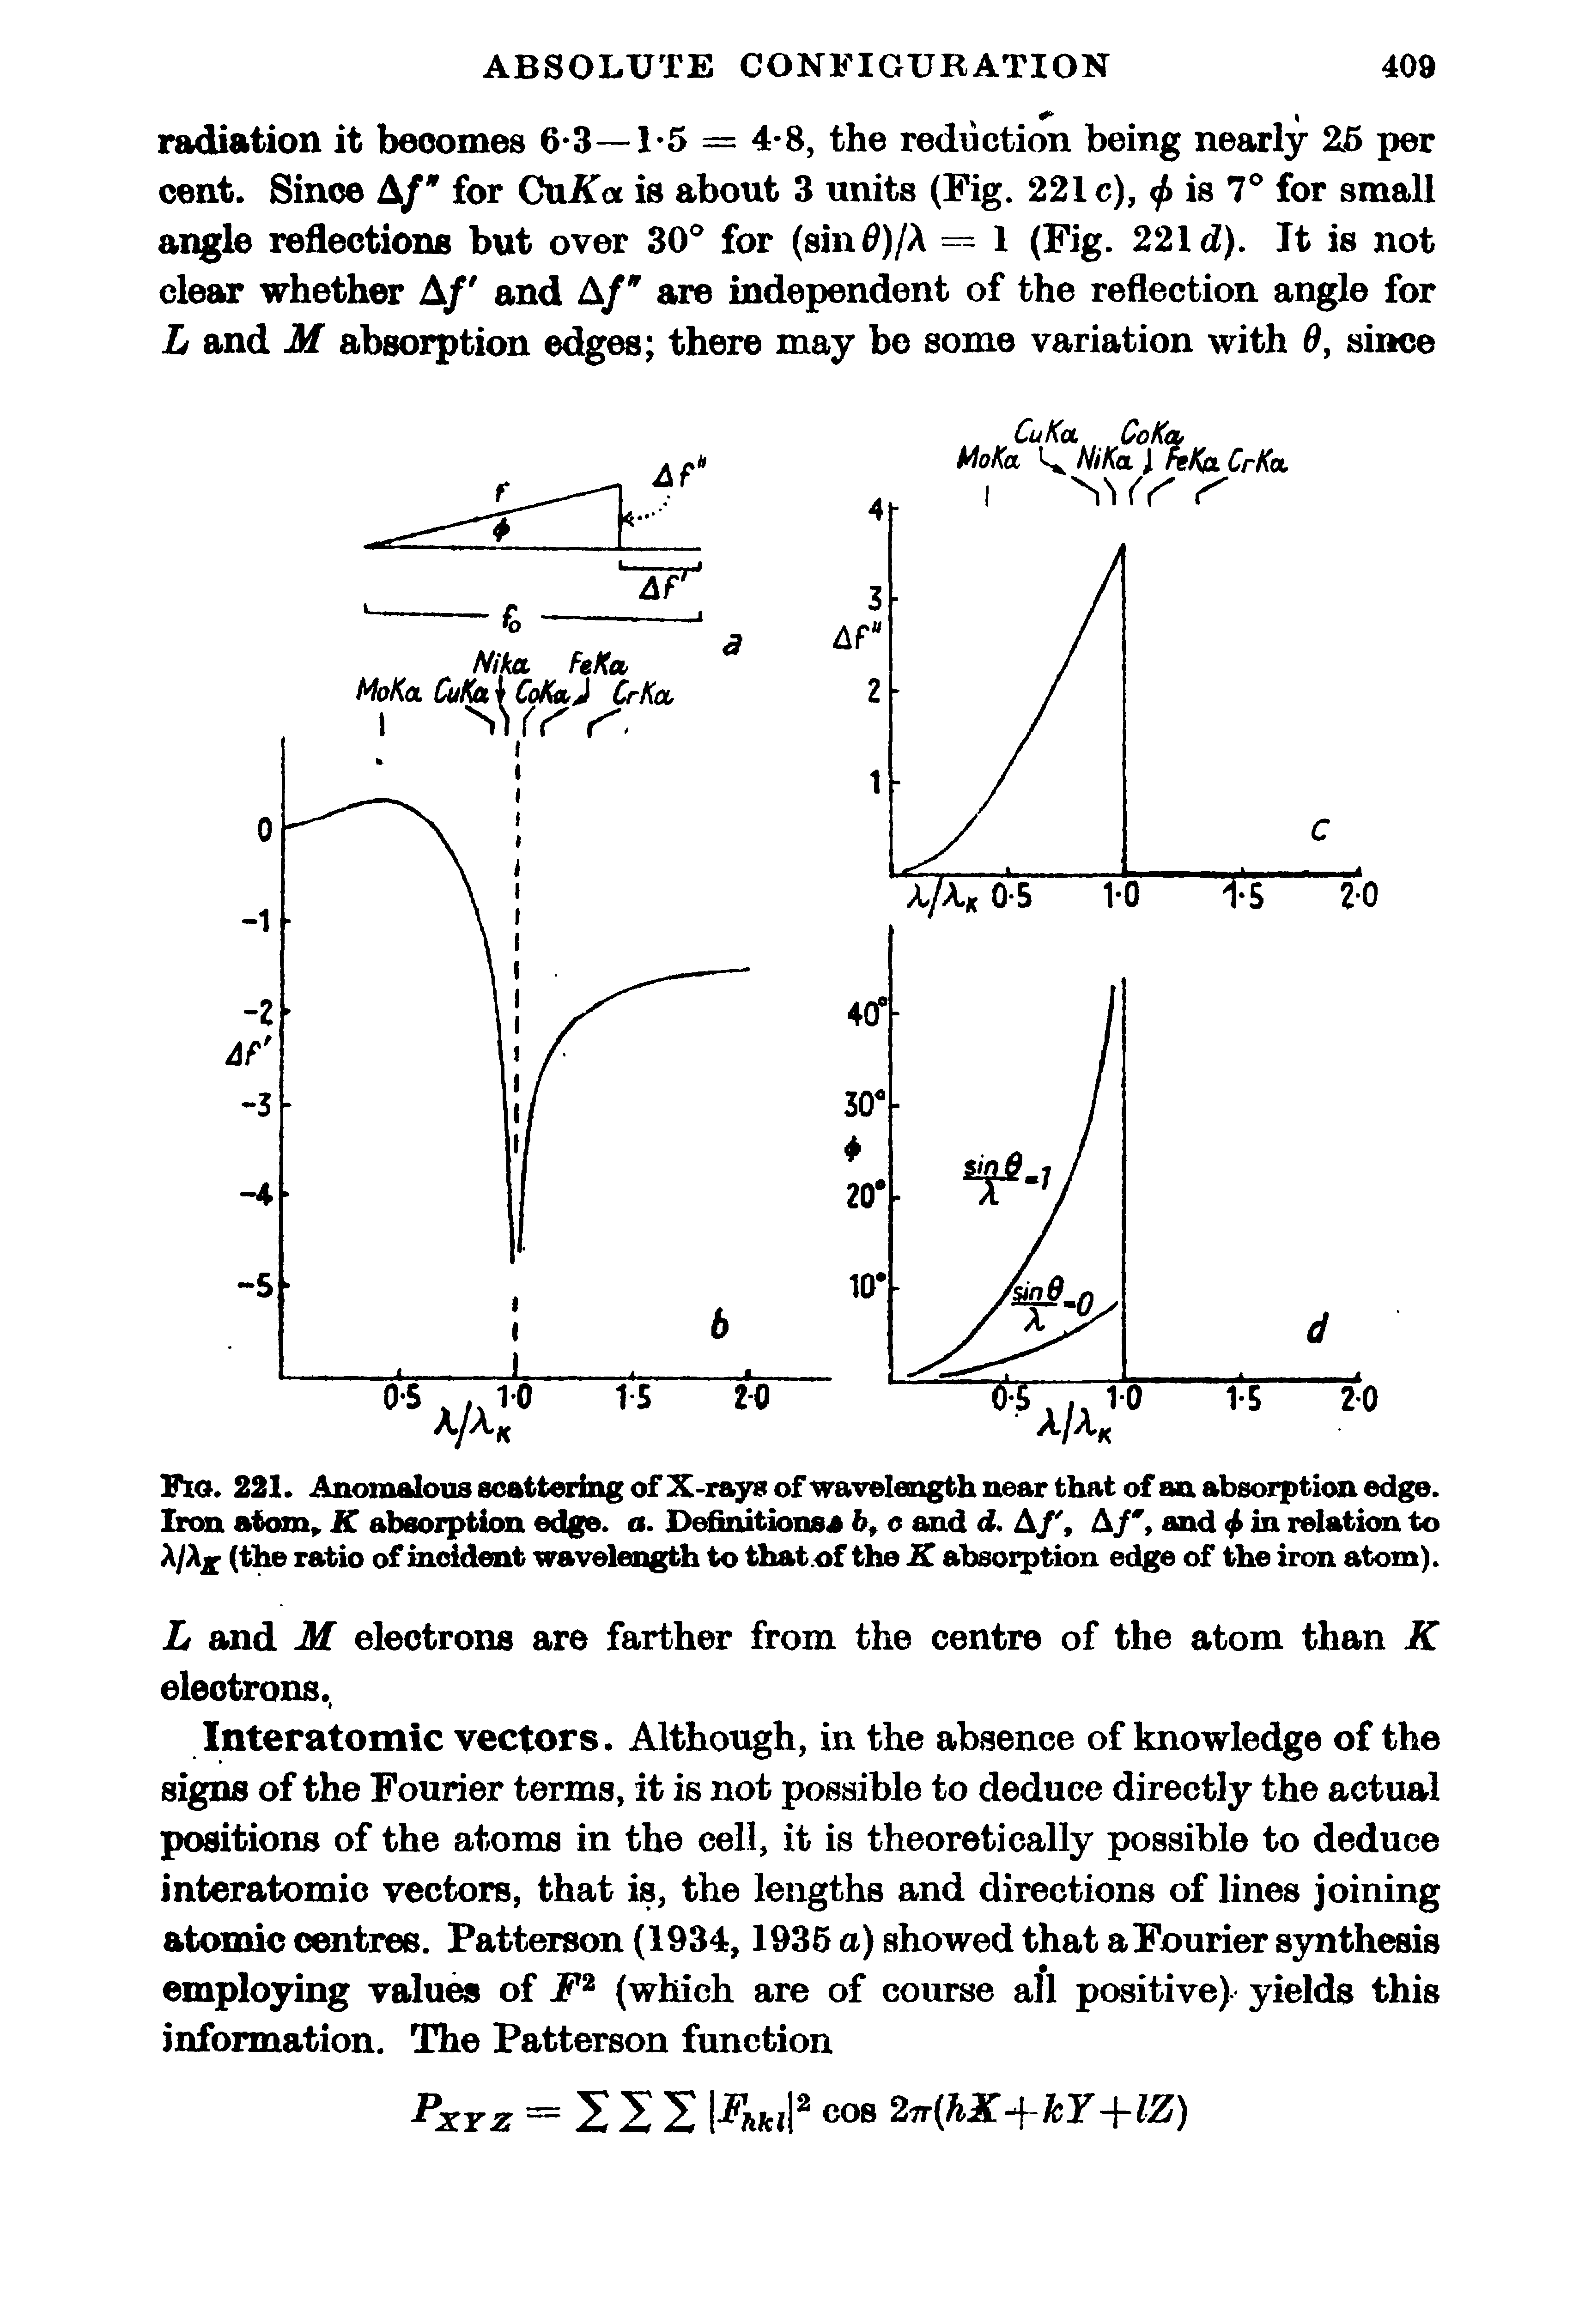 Fig. 221. Anomalous scattering of X-rays of wavelength near that of an absorption edge. Iron atom,. K absorption edge, a. Definitions4 6, o and d. A/, A/, and 4 in relation to A/Ajp (the ratio of incident wavelength to that. of the K absorption edge of the iron atom).